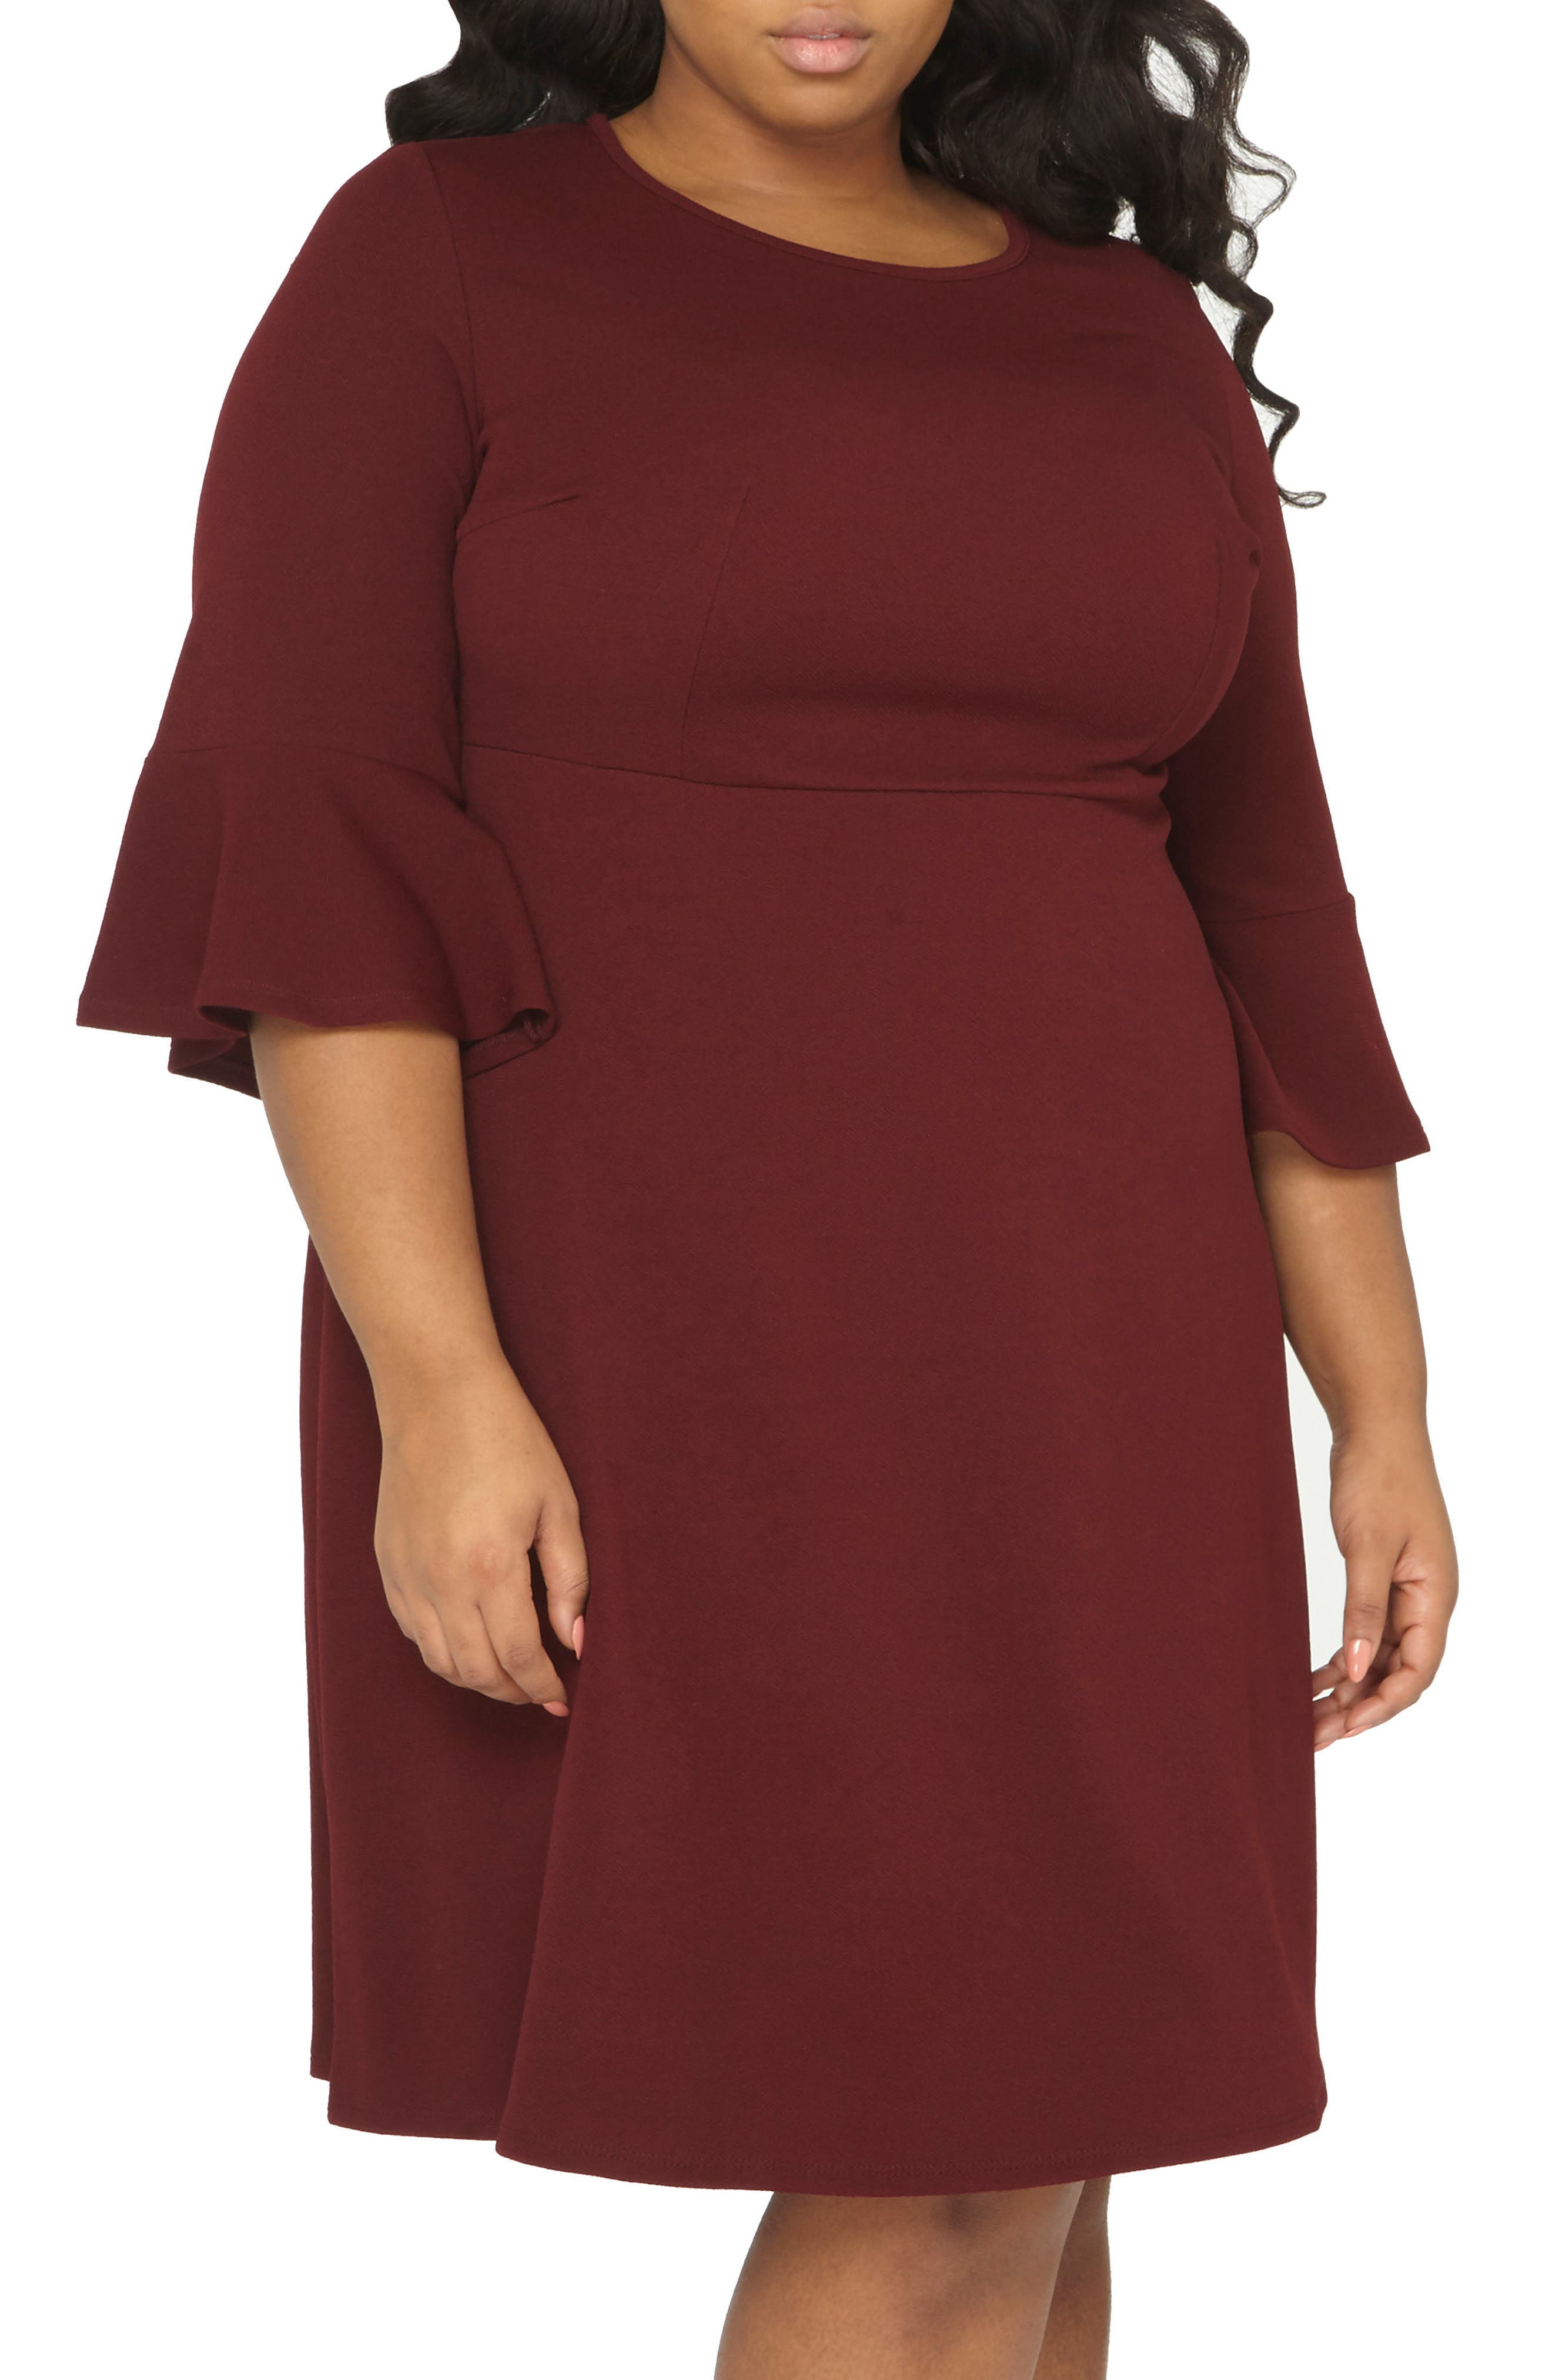 Ruffle Sleeve Fitted Dress,                             Main thumbnail 1, color,                             600